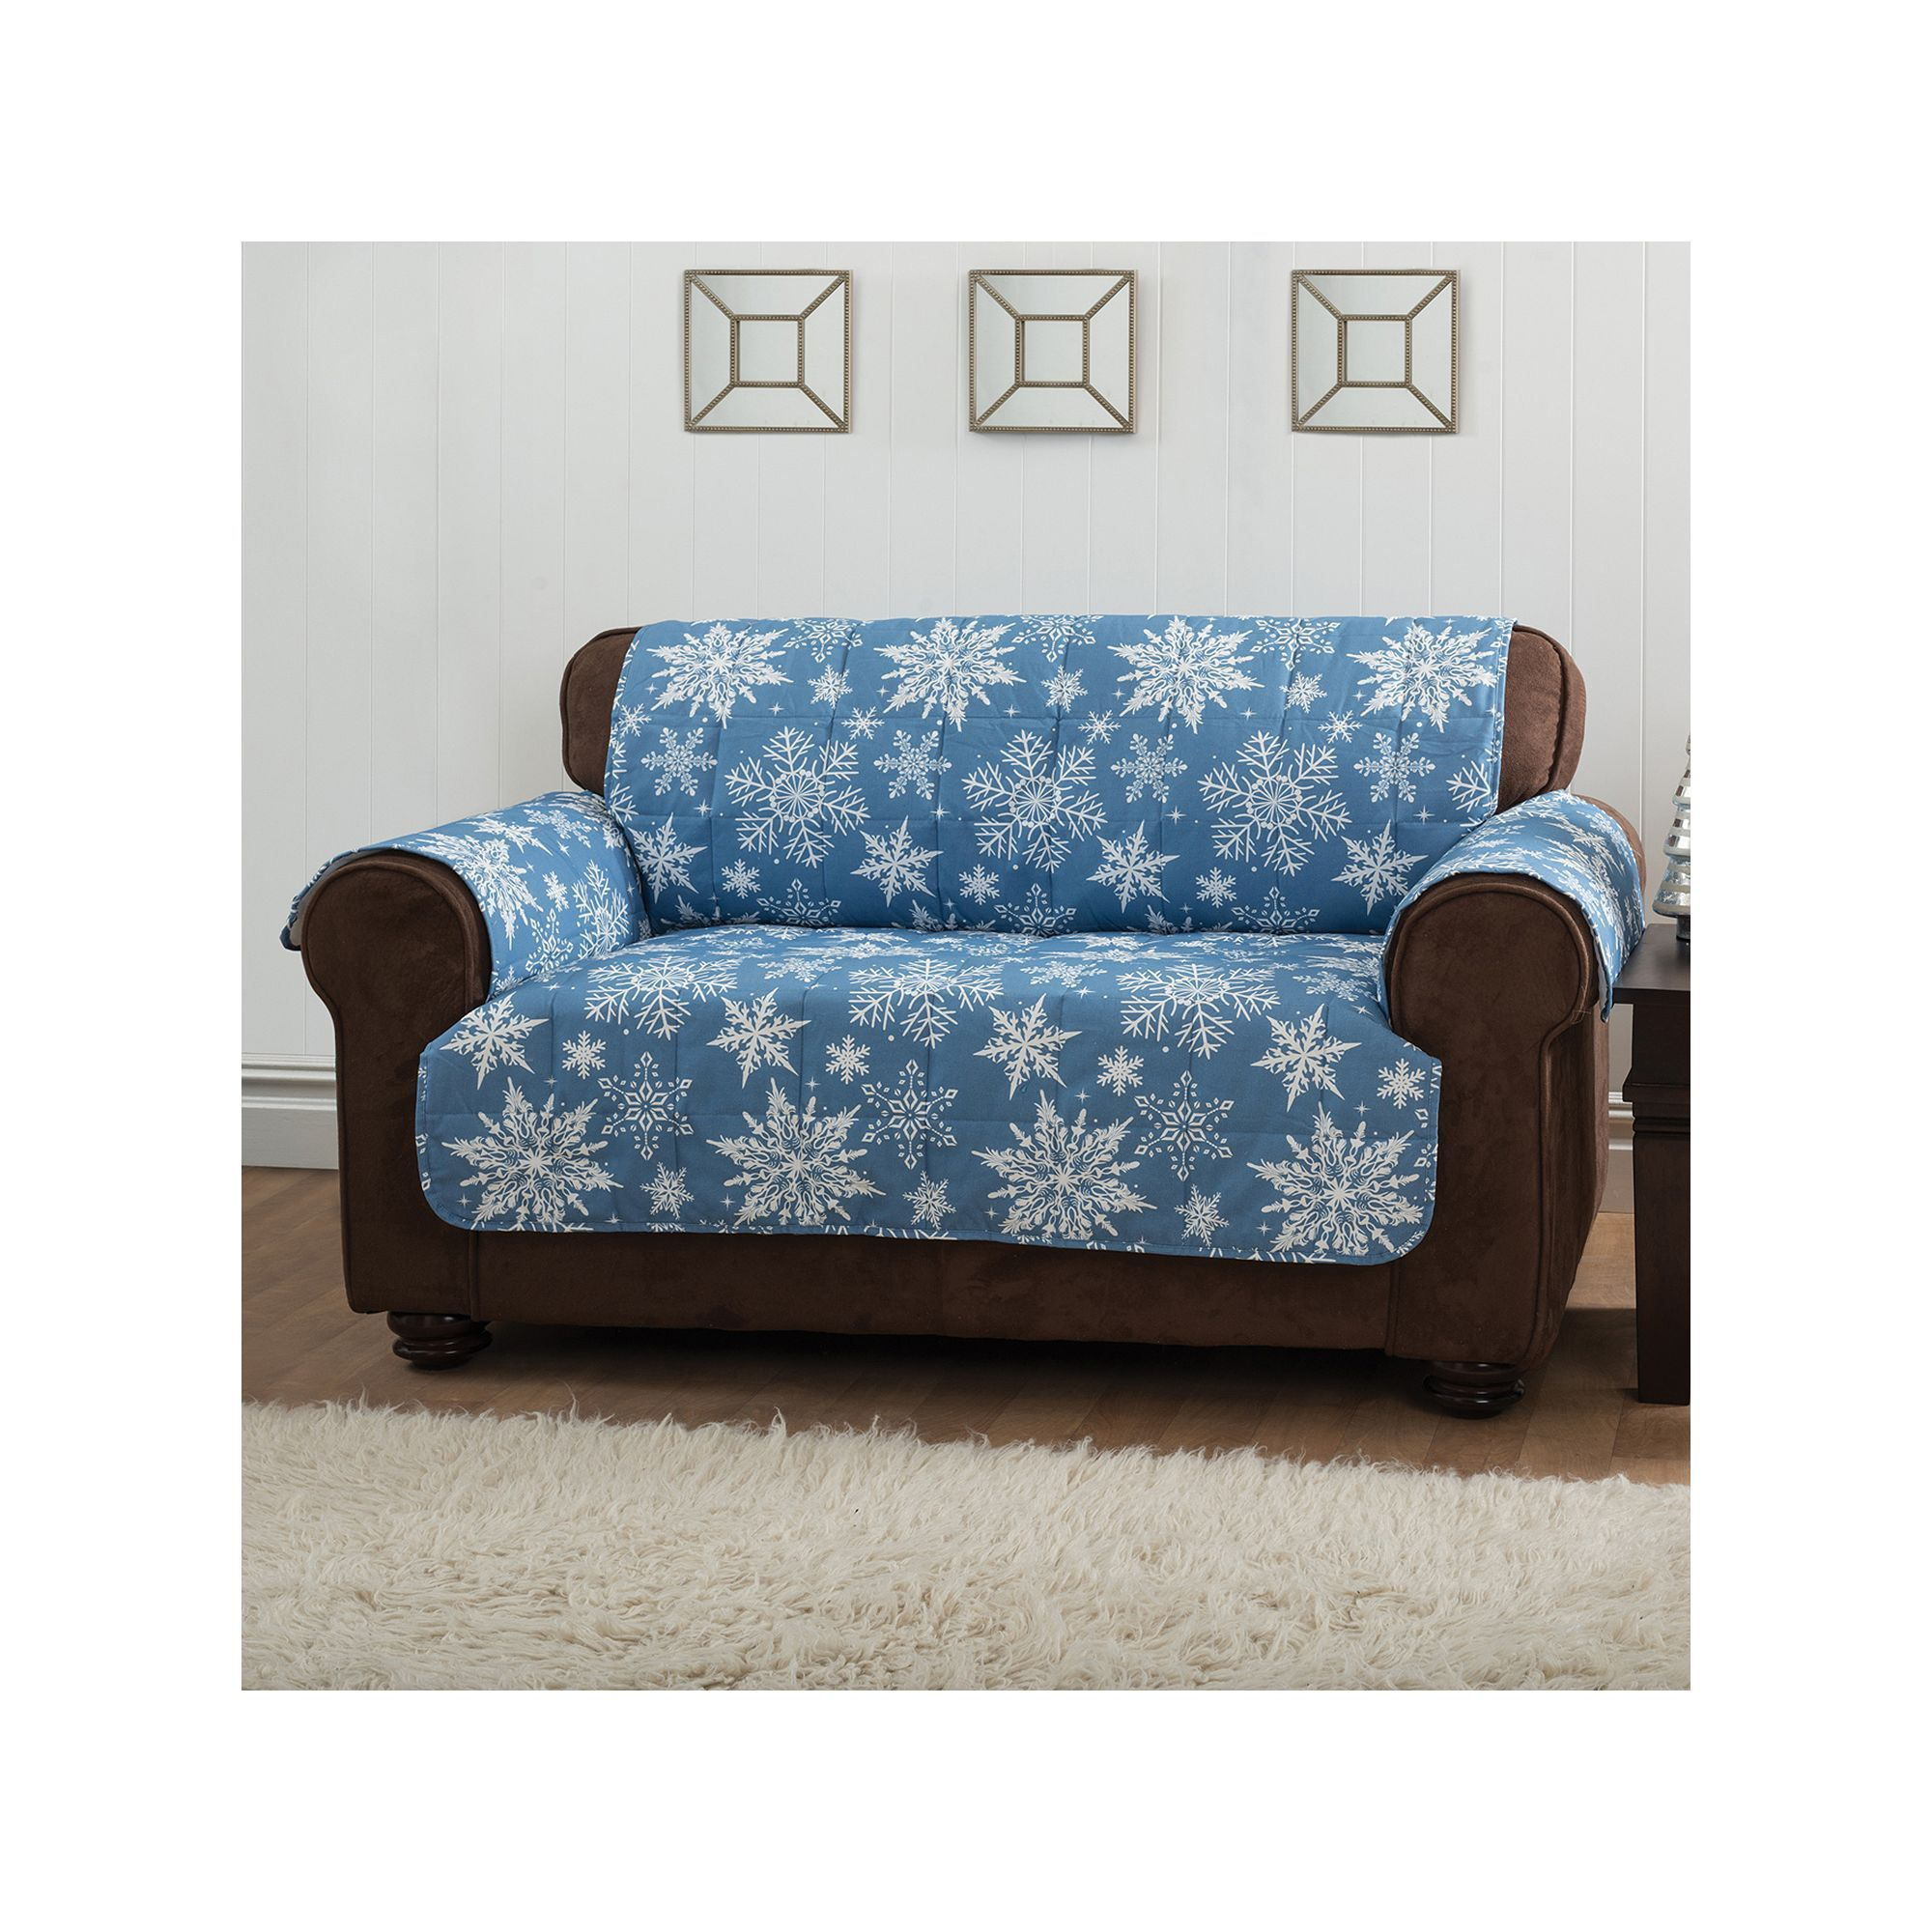 Innovative Sofas innovative textile solutions snowflake sofa protector, blue